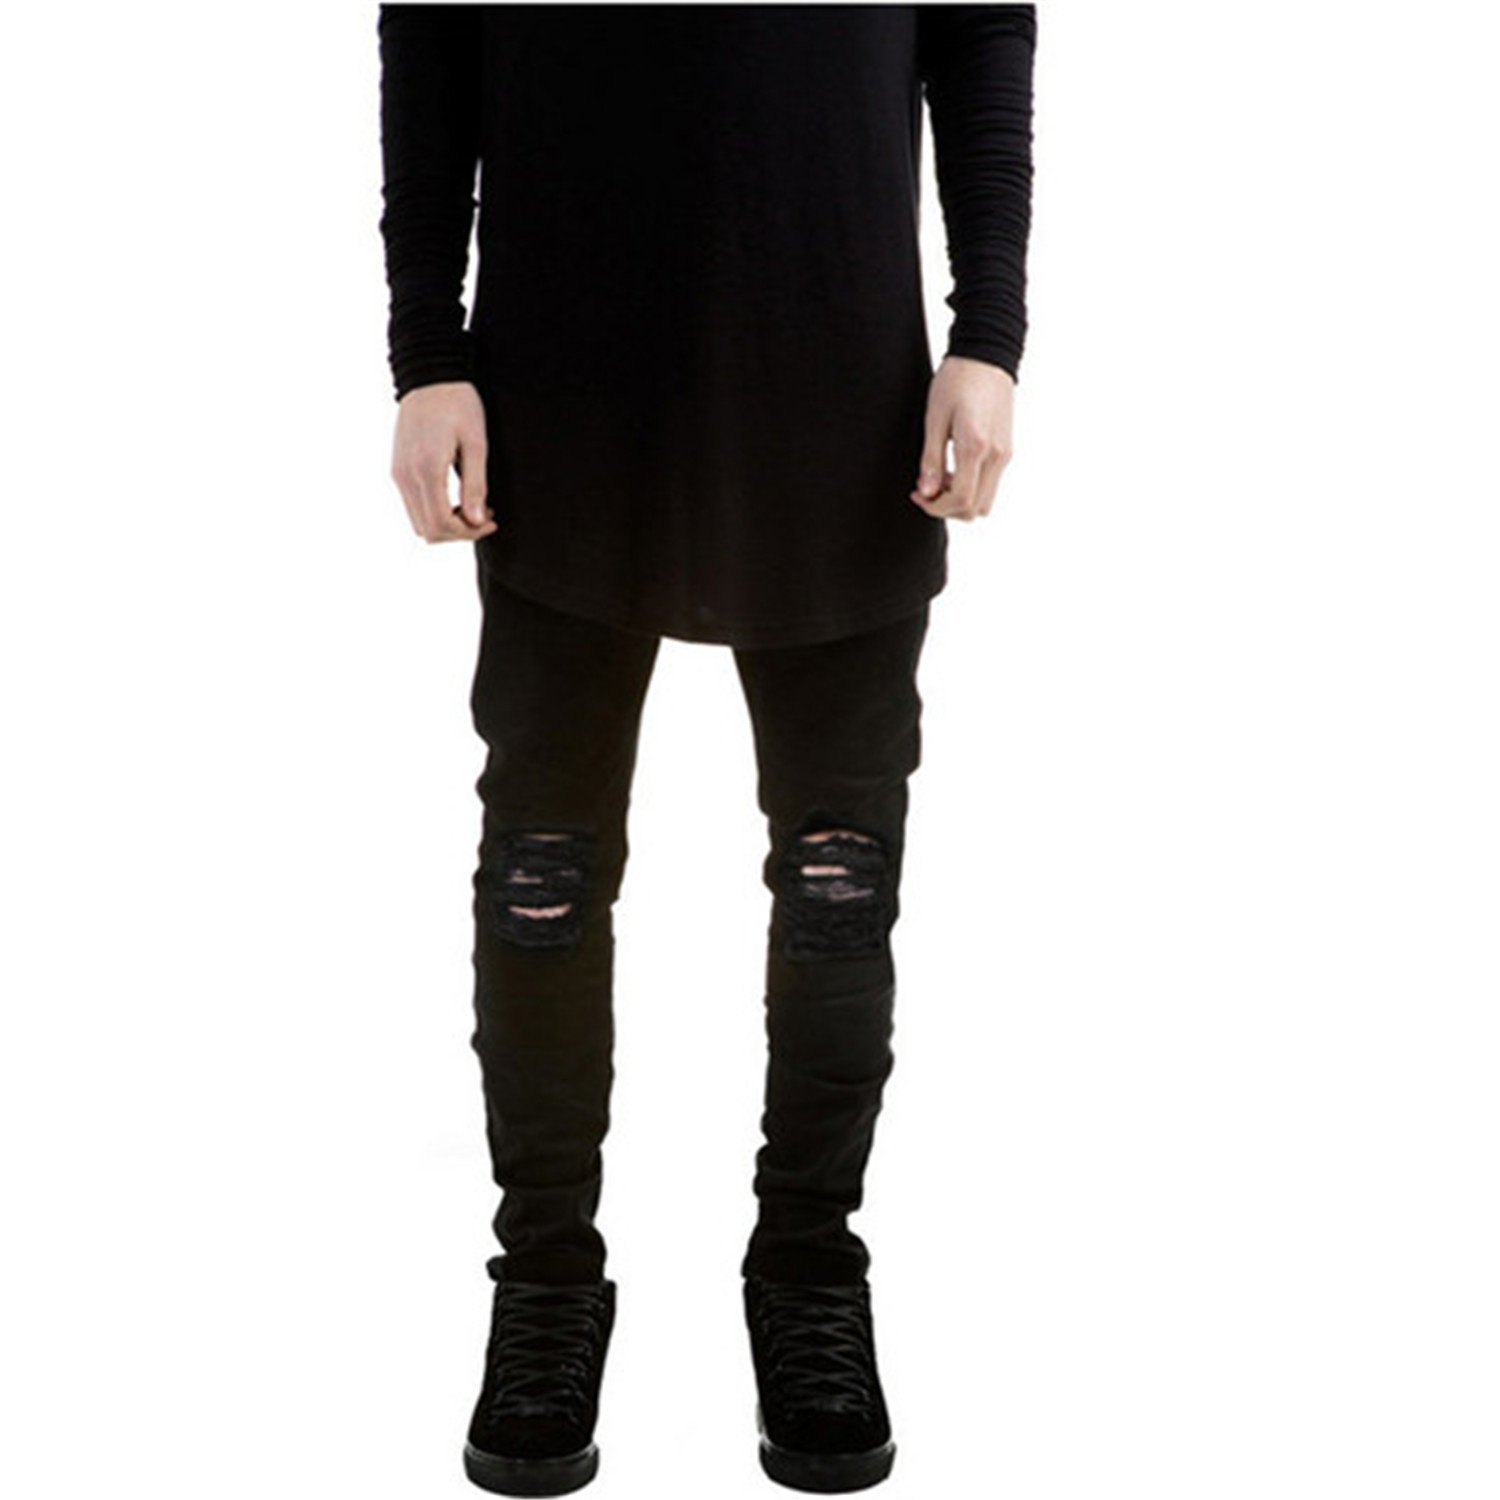 Joshua Sanchez 2017 Men Ripped Jeans With Holes Skinny Slim Fit Destroyed Torn Jean Pants